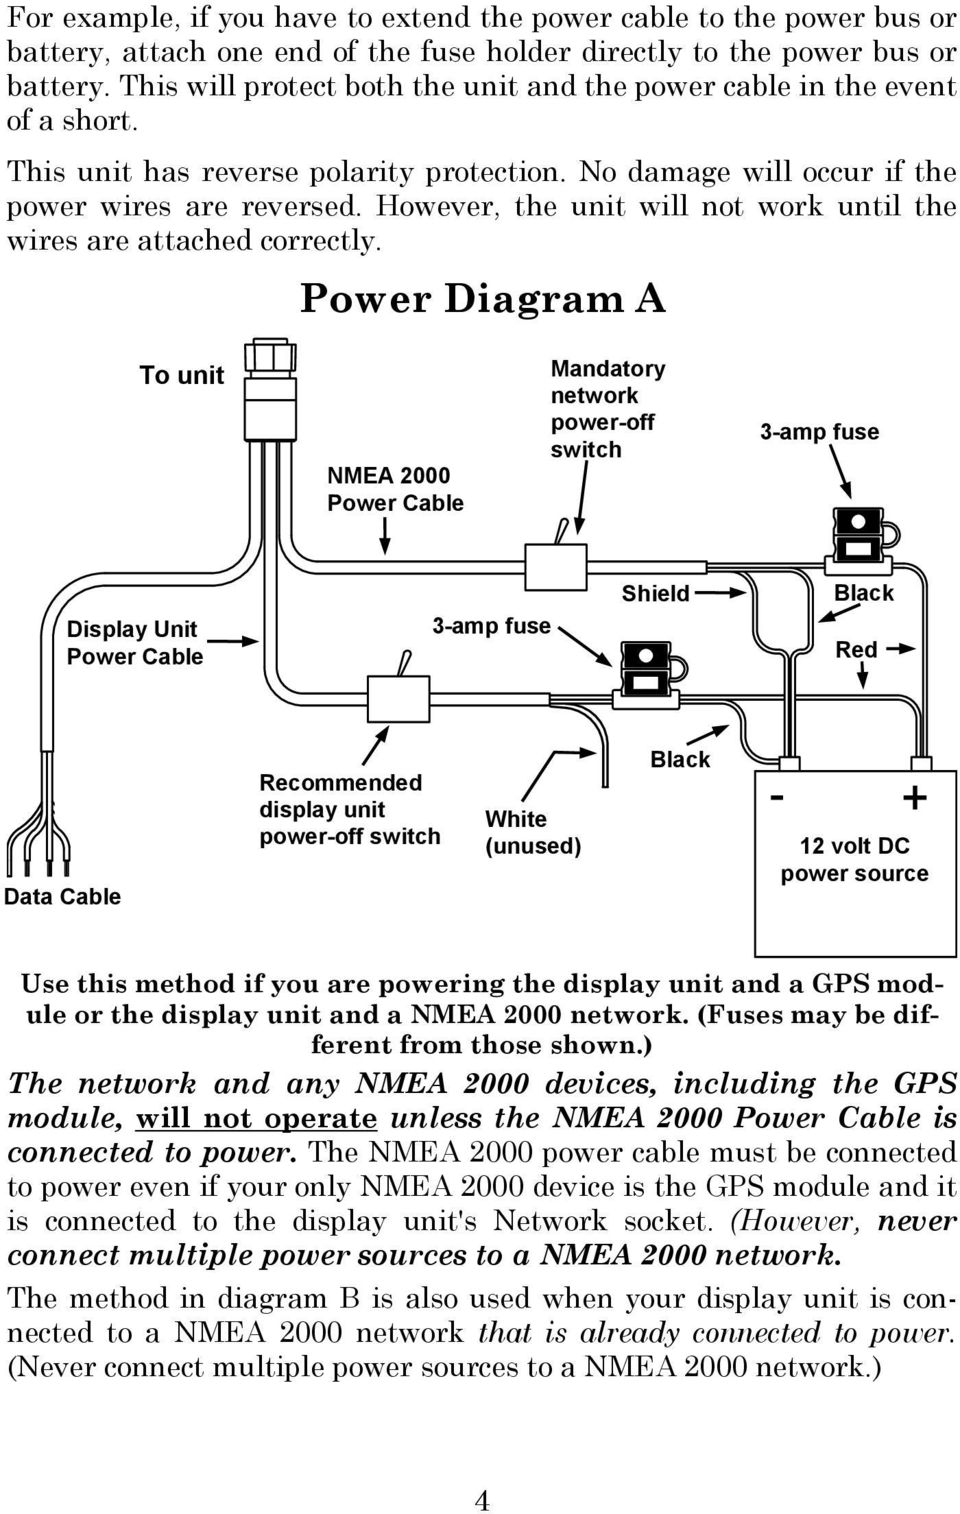 Lms 480m 480df Globalmap 4800m Pdf Nmea 2000 T Connector Wiring Diagram However The Unit Will Not Work Until Wires Are Attached Correctly